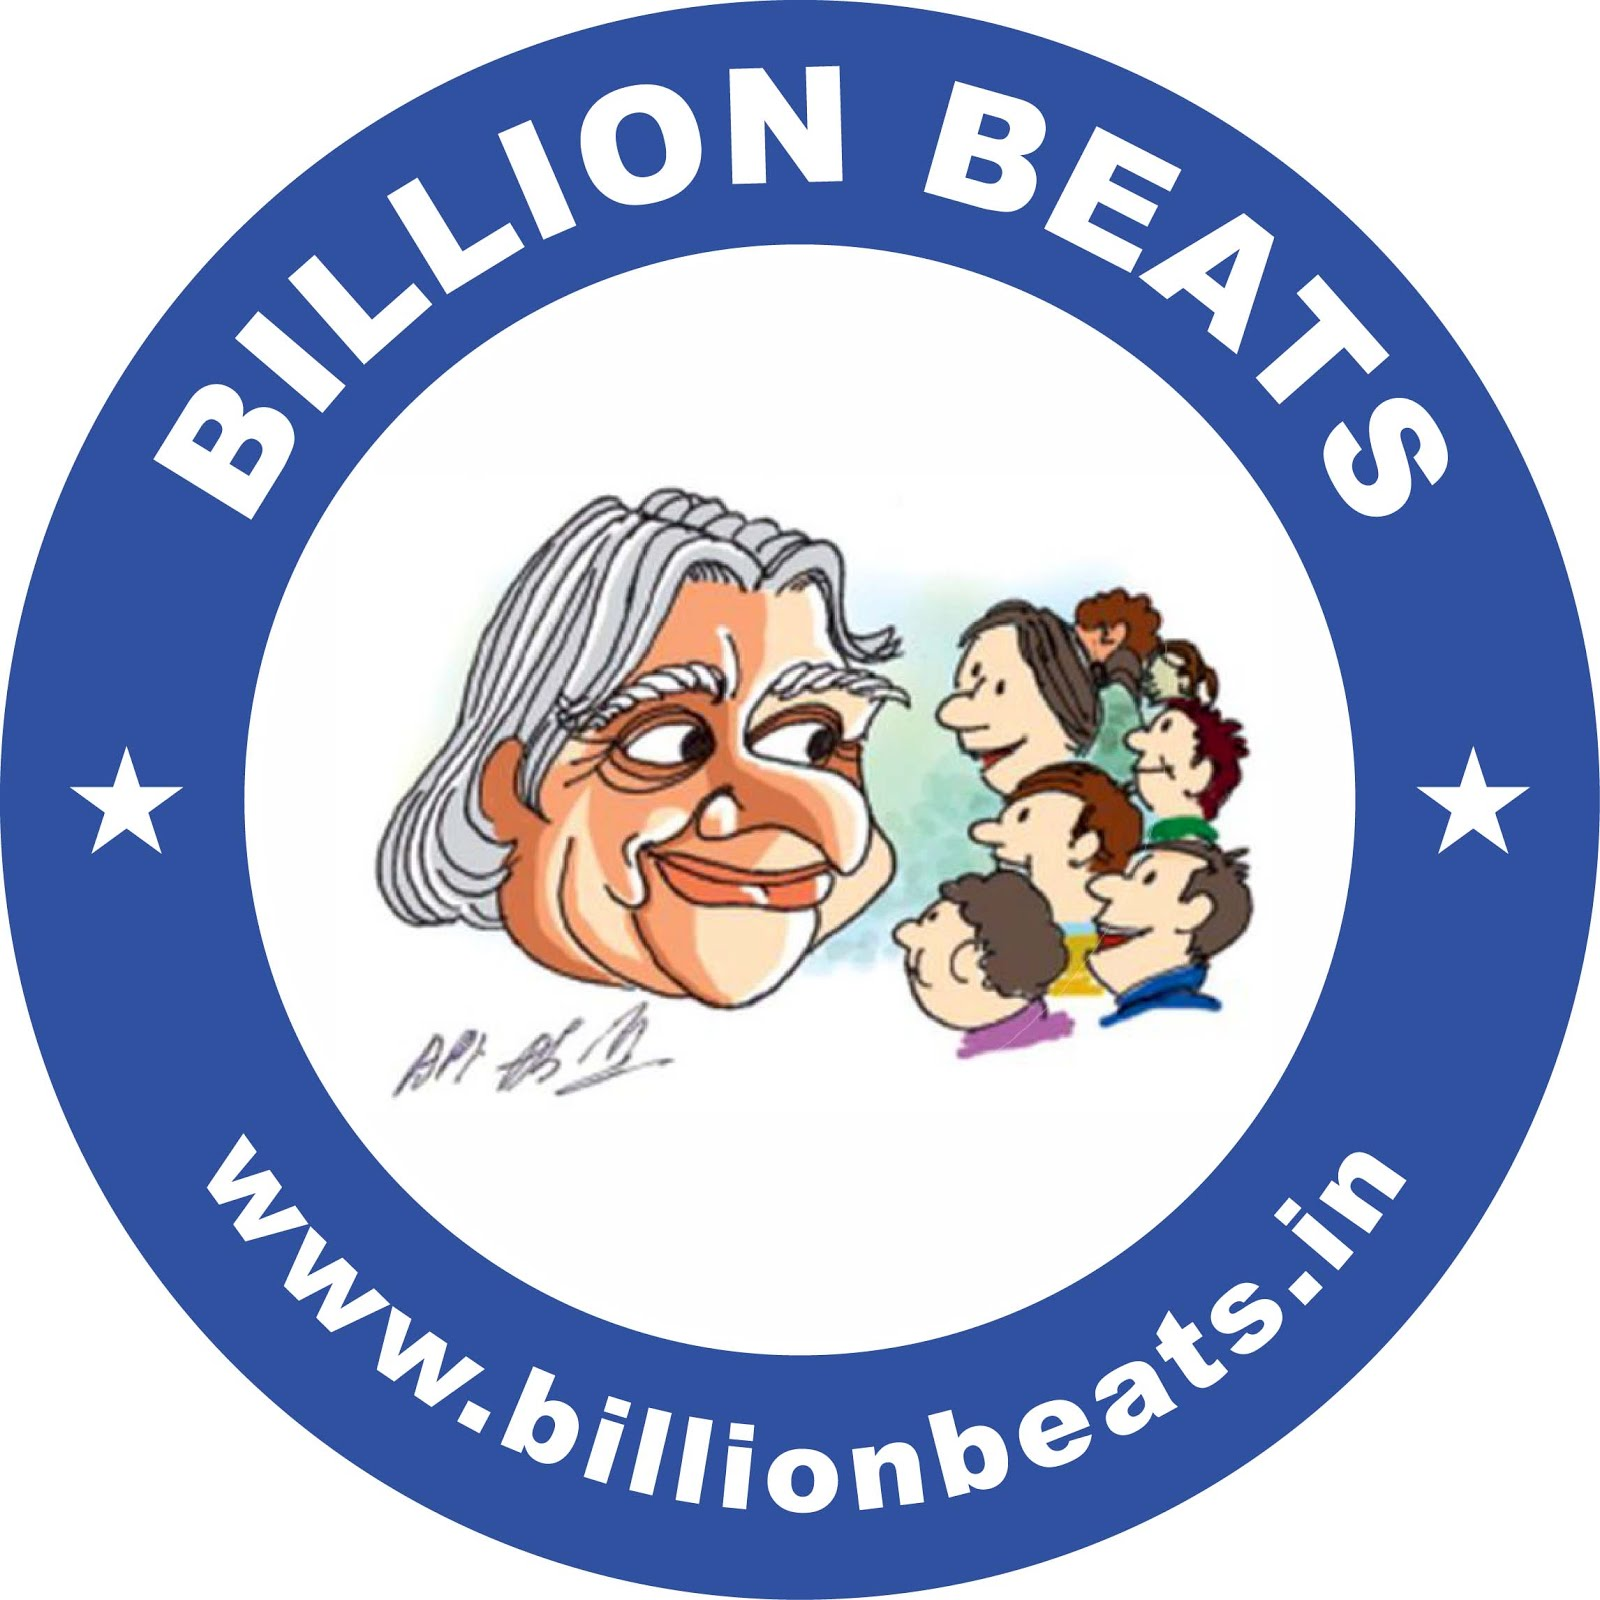 Billion Beats